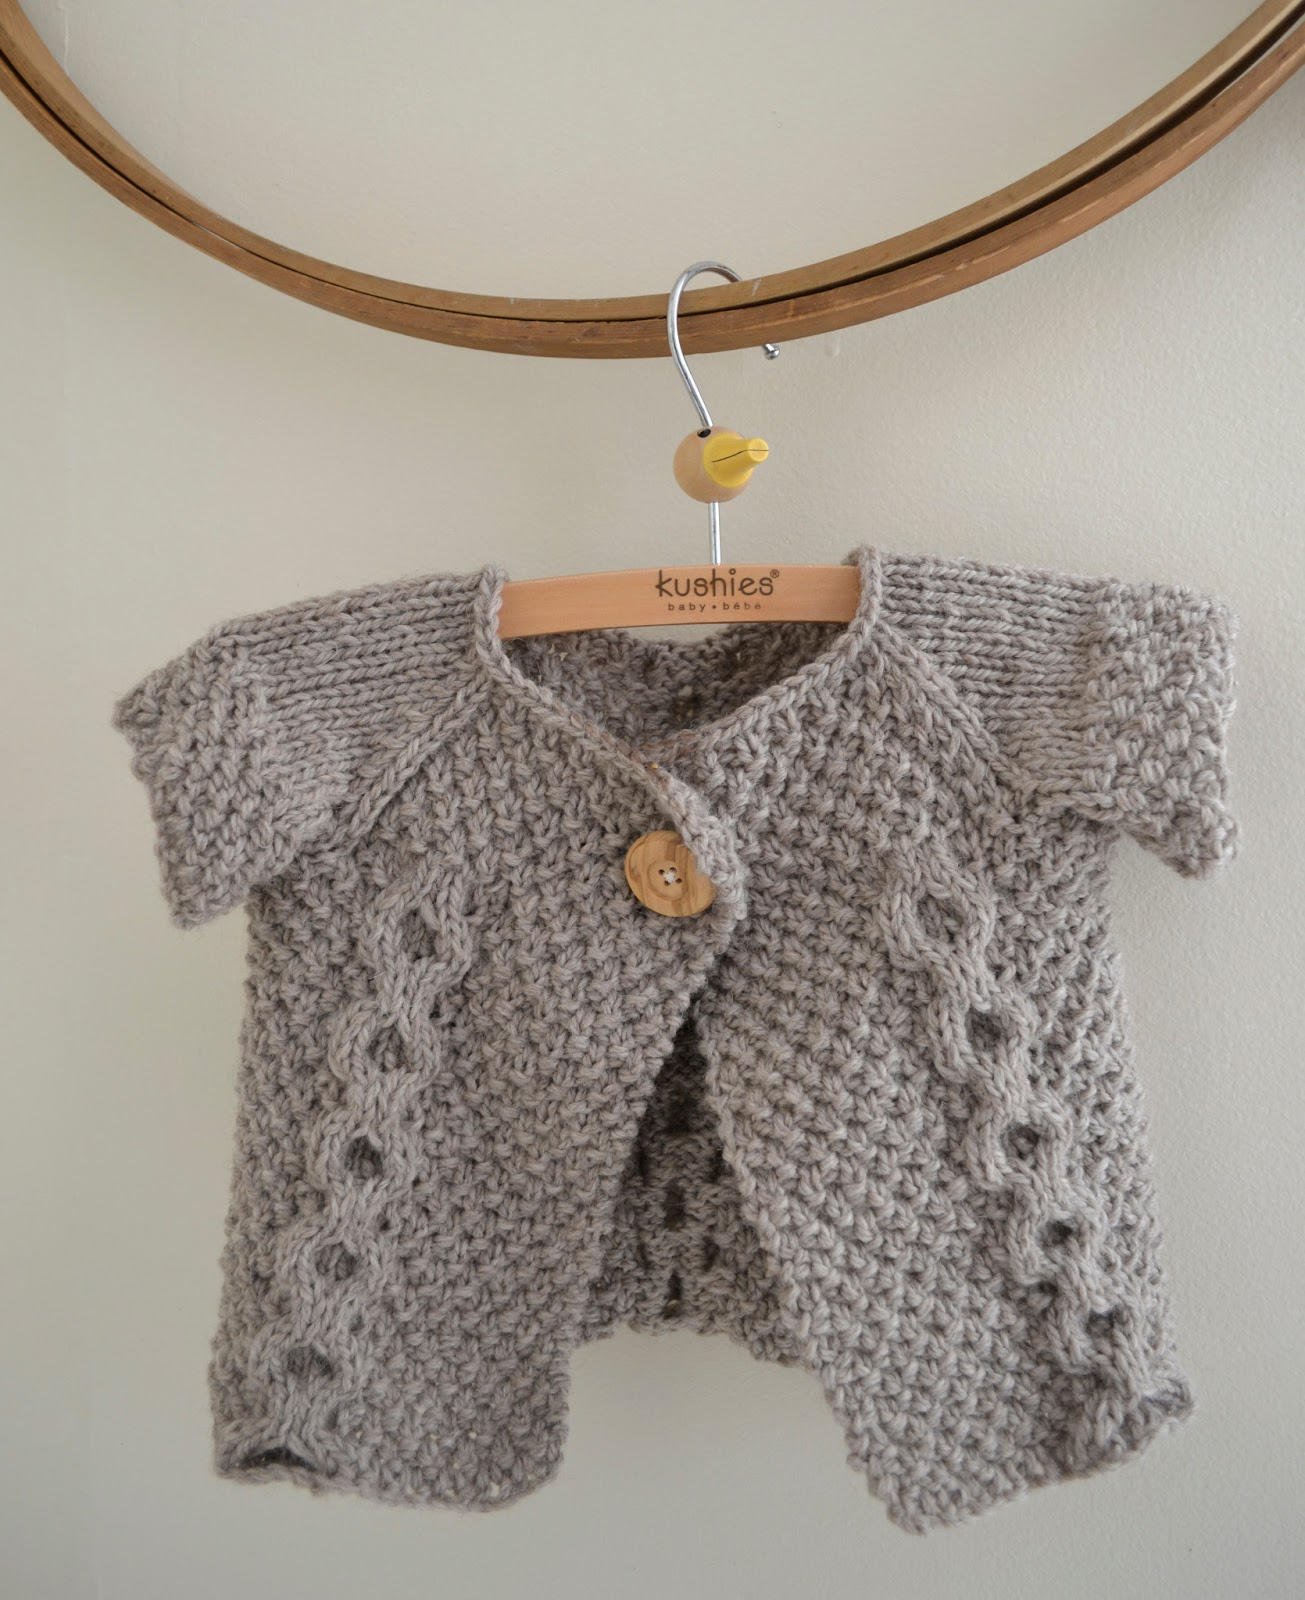 Knitting Patterns Free : Baby Sweater Knitting Pattern A Knitting Blog